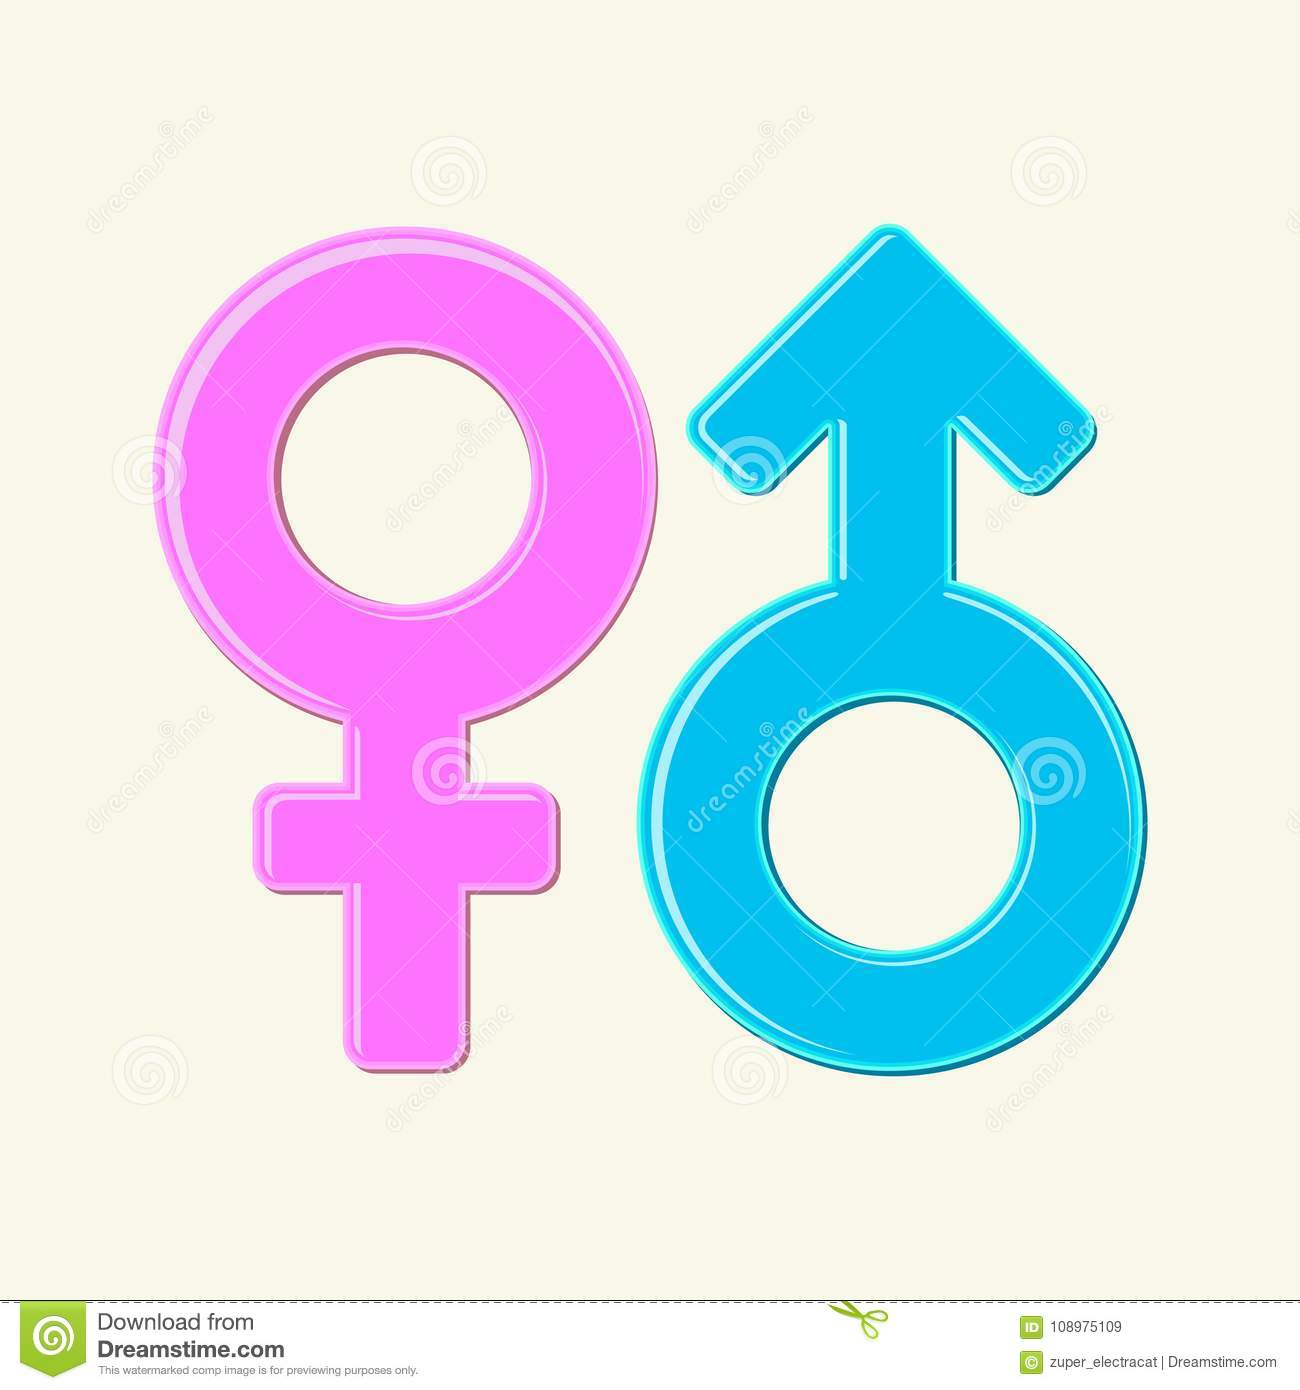 The Mars And Venus Symbols Male And Female Signs Isolated Blue And